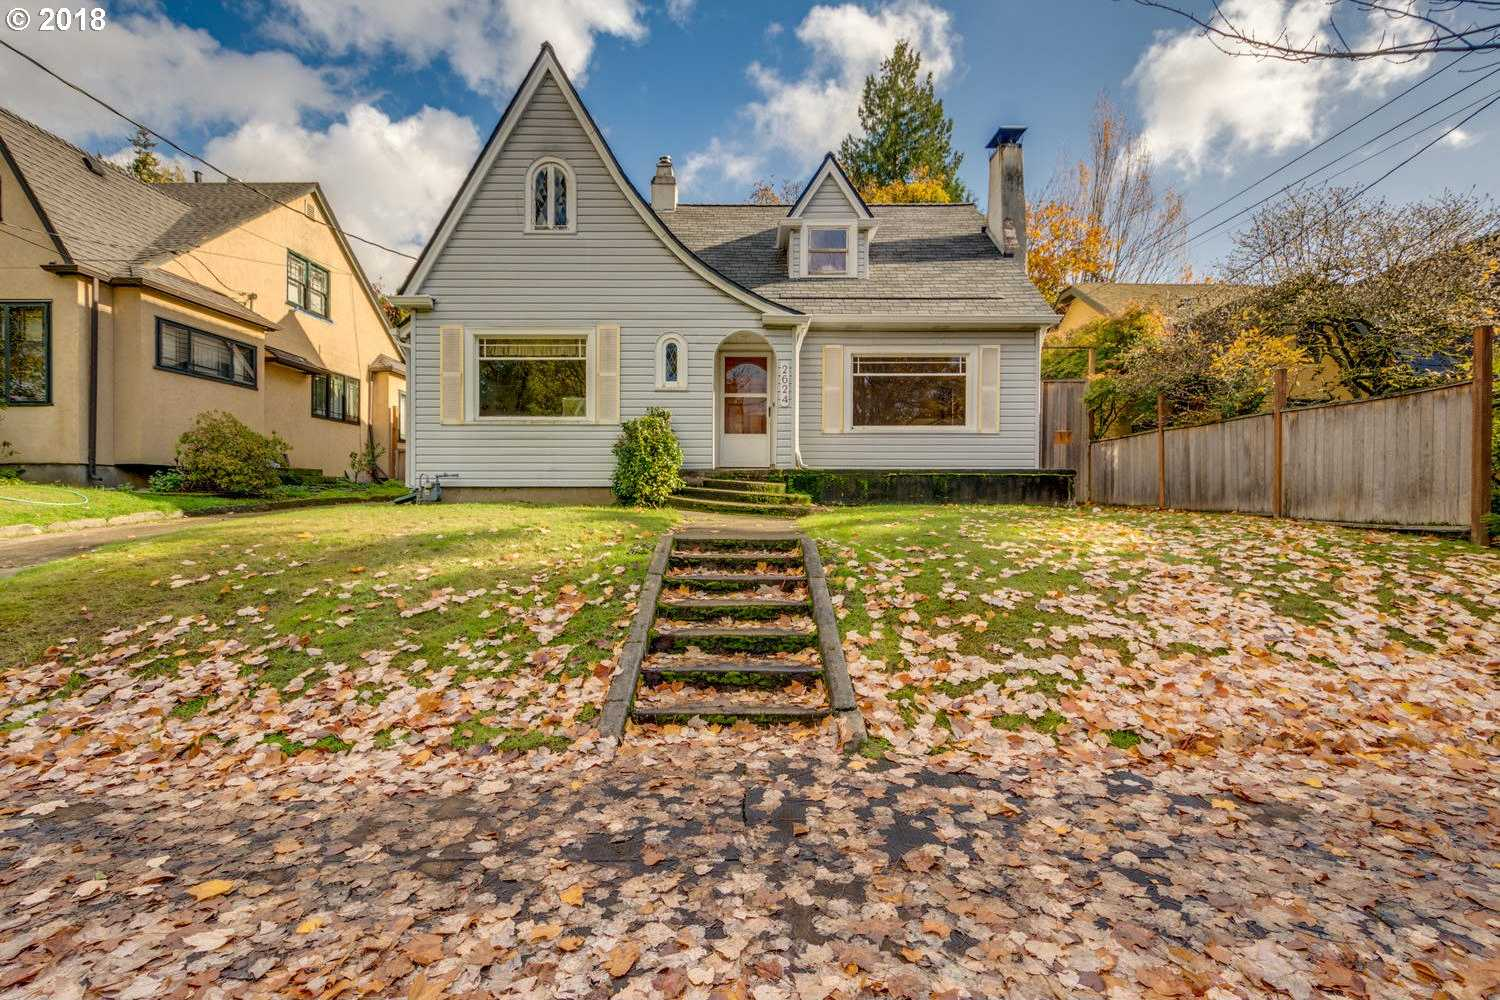 $425,000 - 3Br/2Ba -  for Sale in Hollywood, Portland